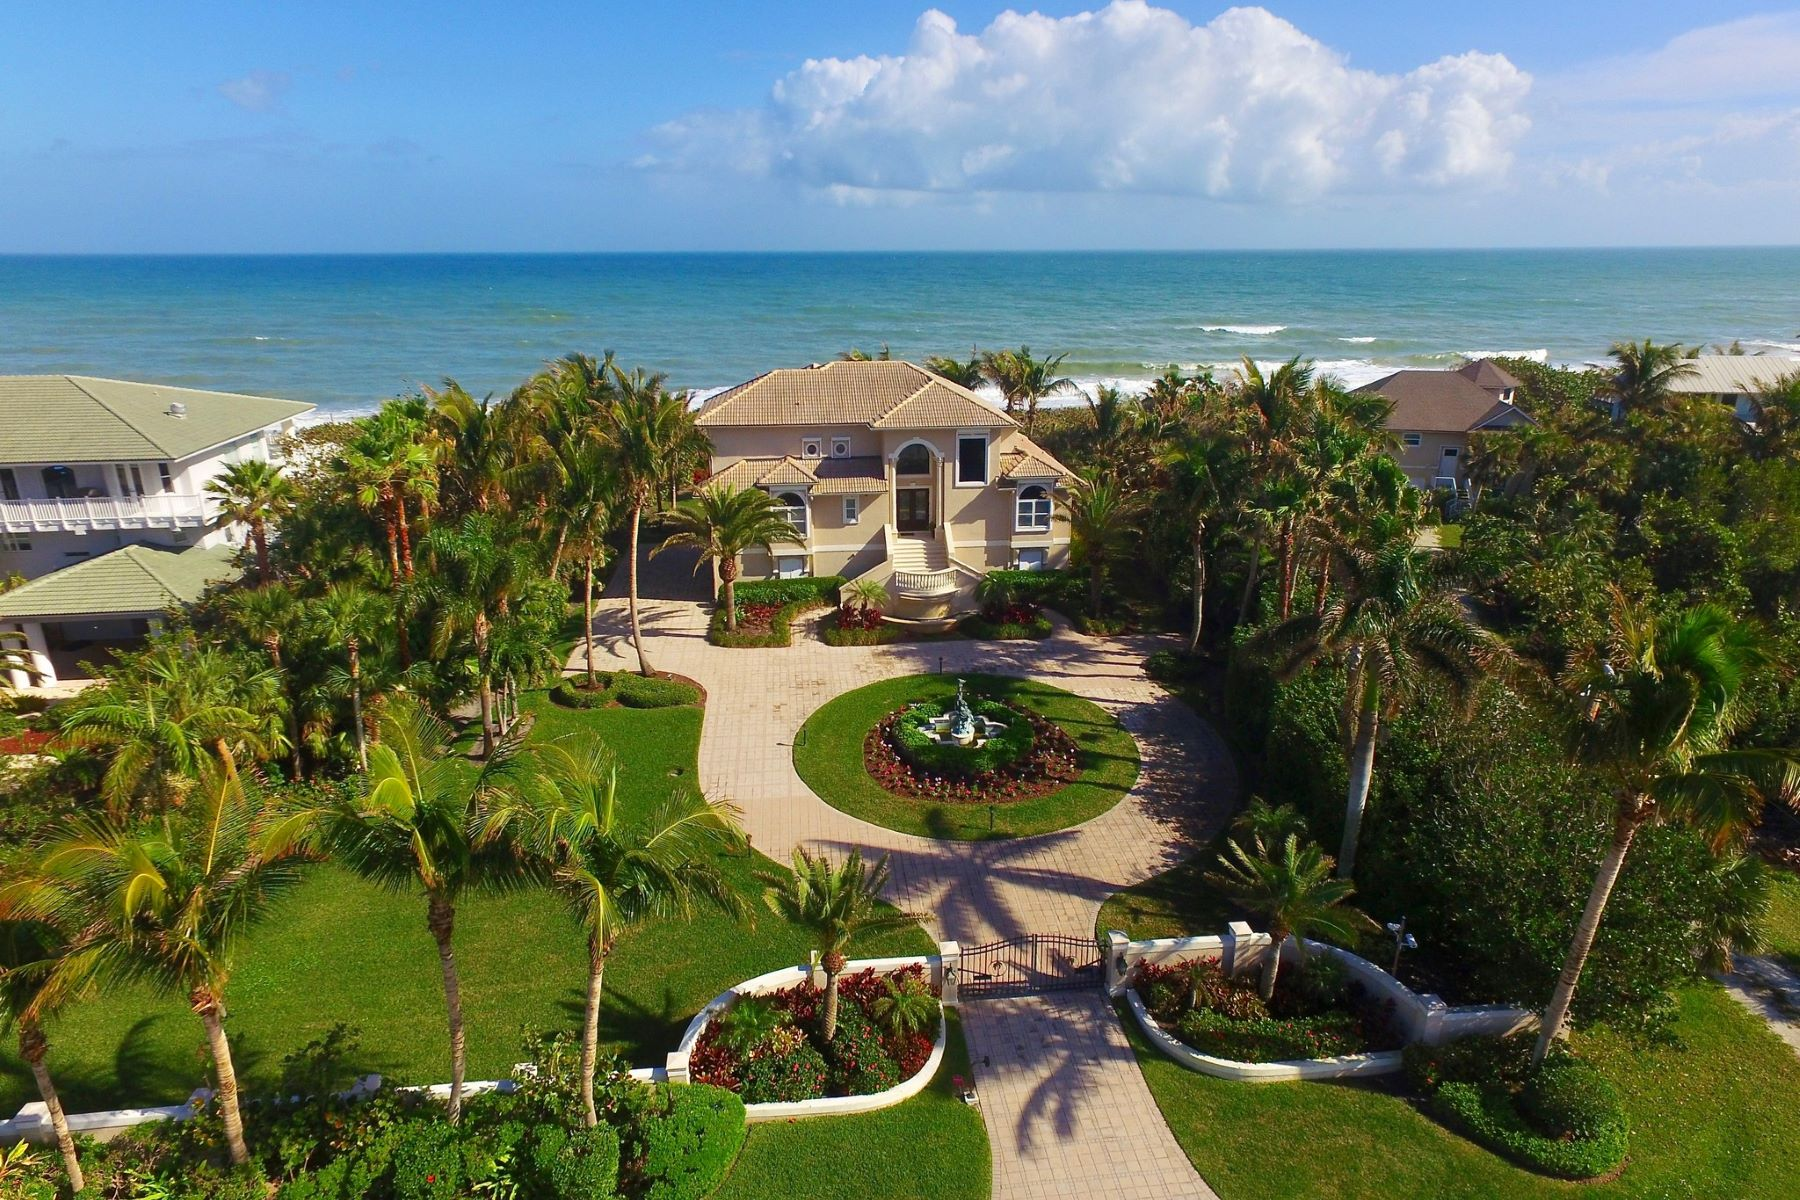 Maison unifamiliale pour l Vente à Ocean To River Gated Oceanfront Estate 12440 Highway A1A Vero Beach, Florida, 32963 États-Unis